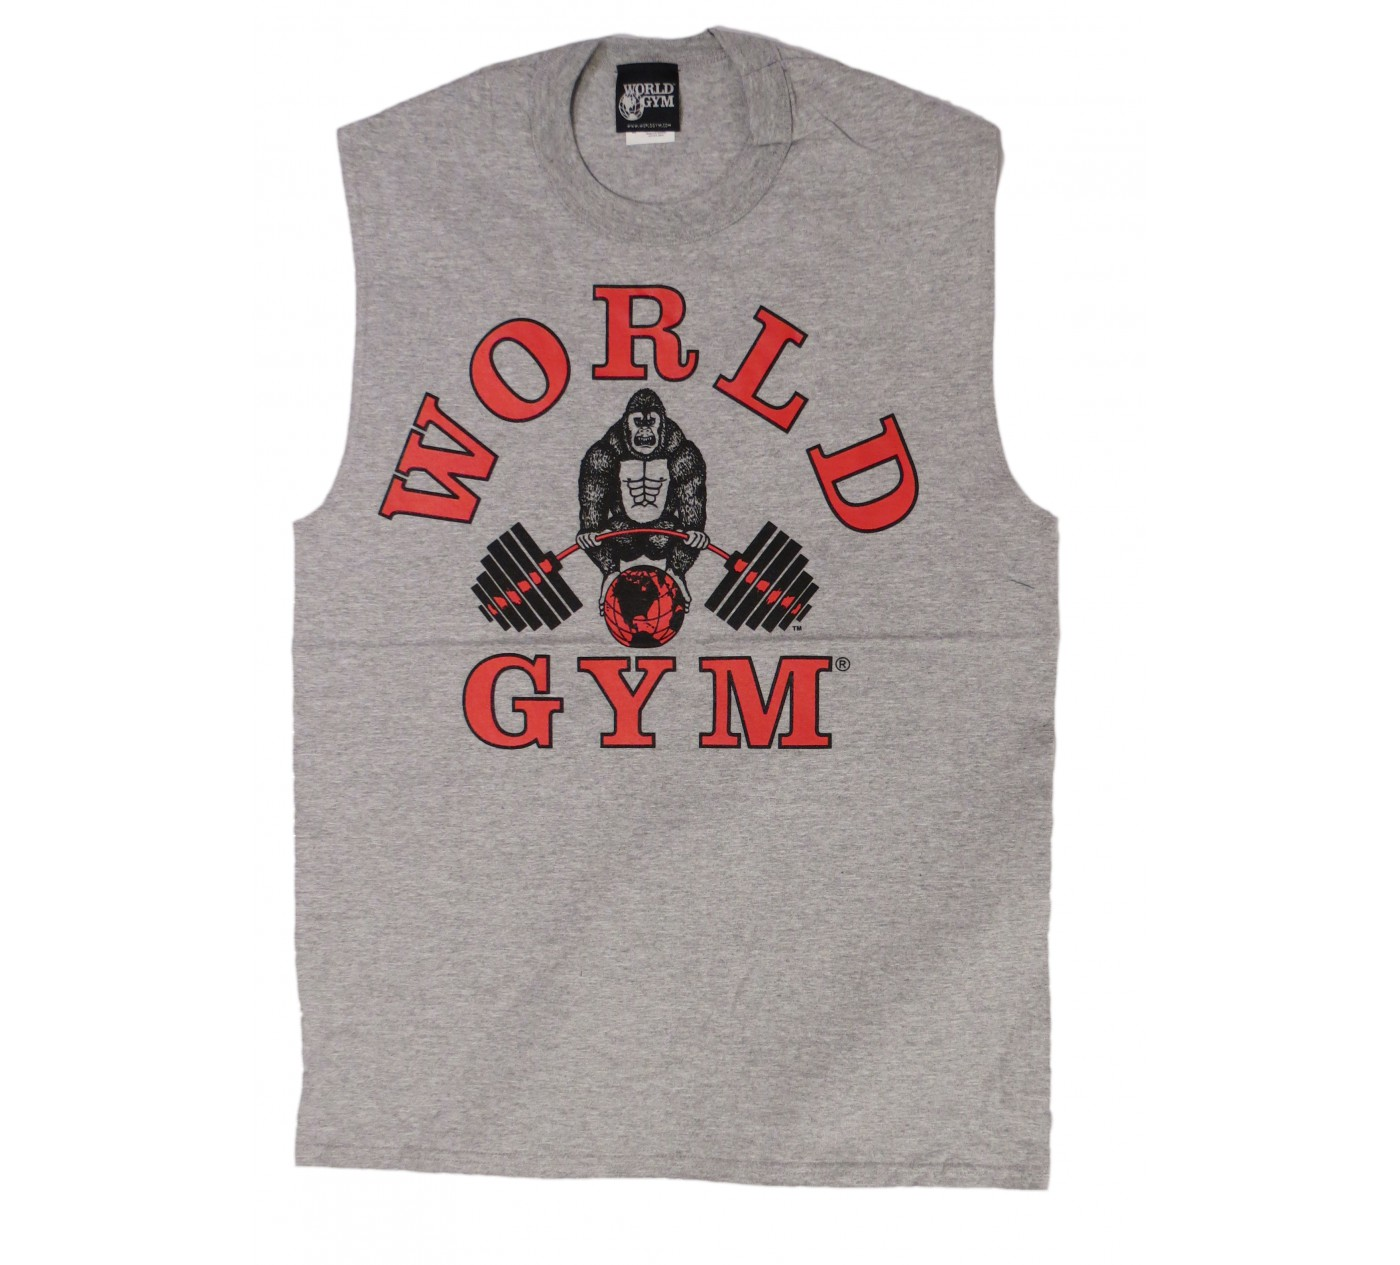 W190 World Gym t-shirt sans manche de muscle